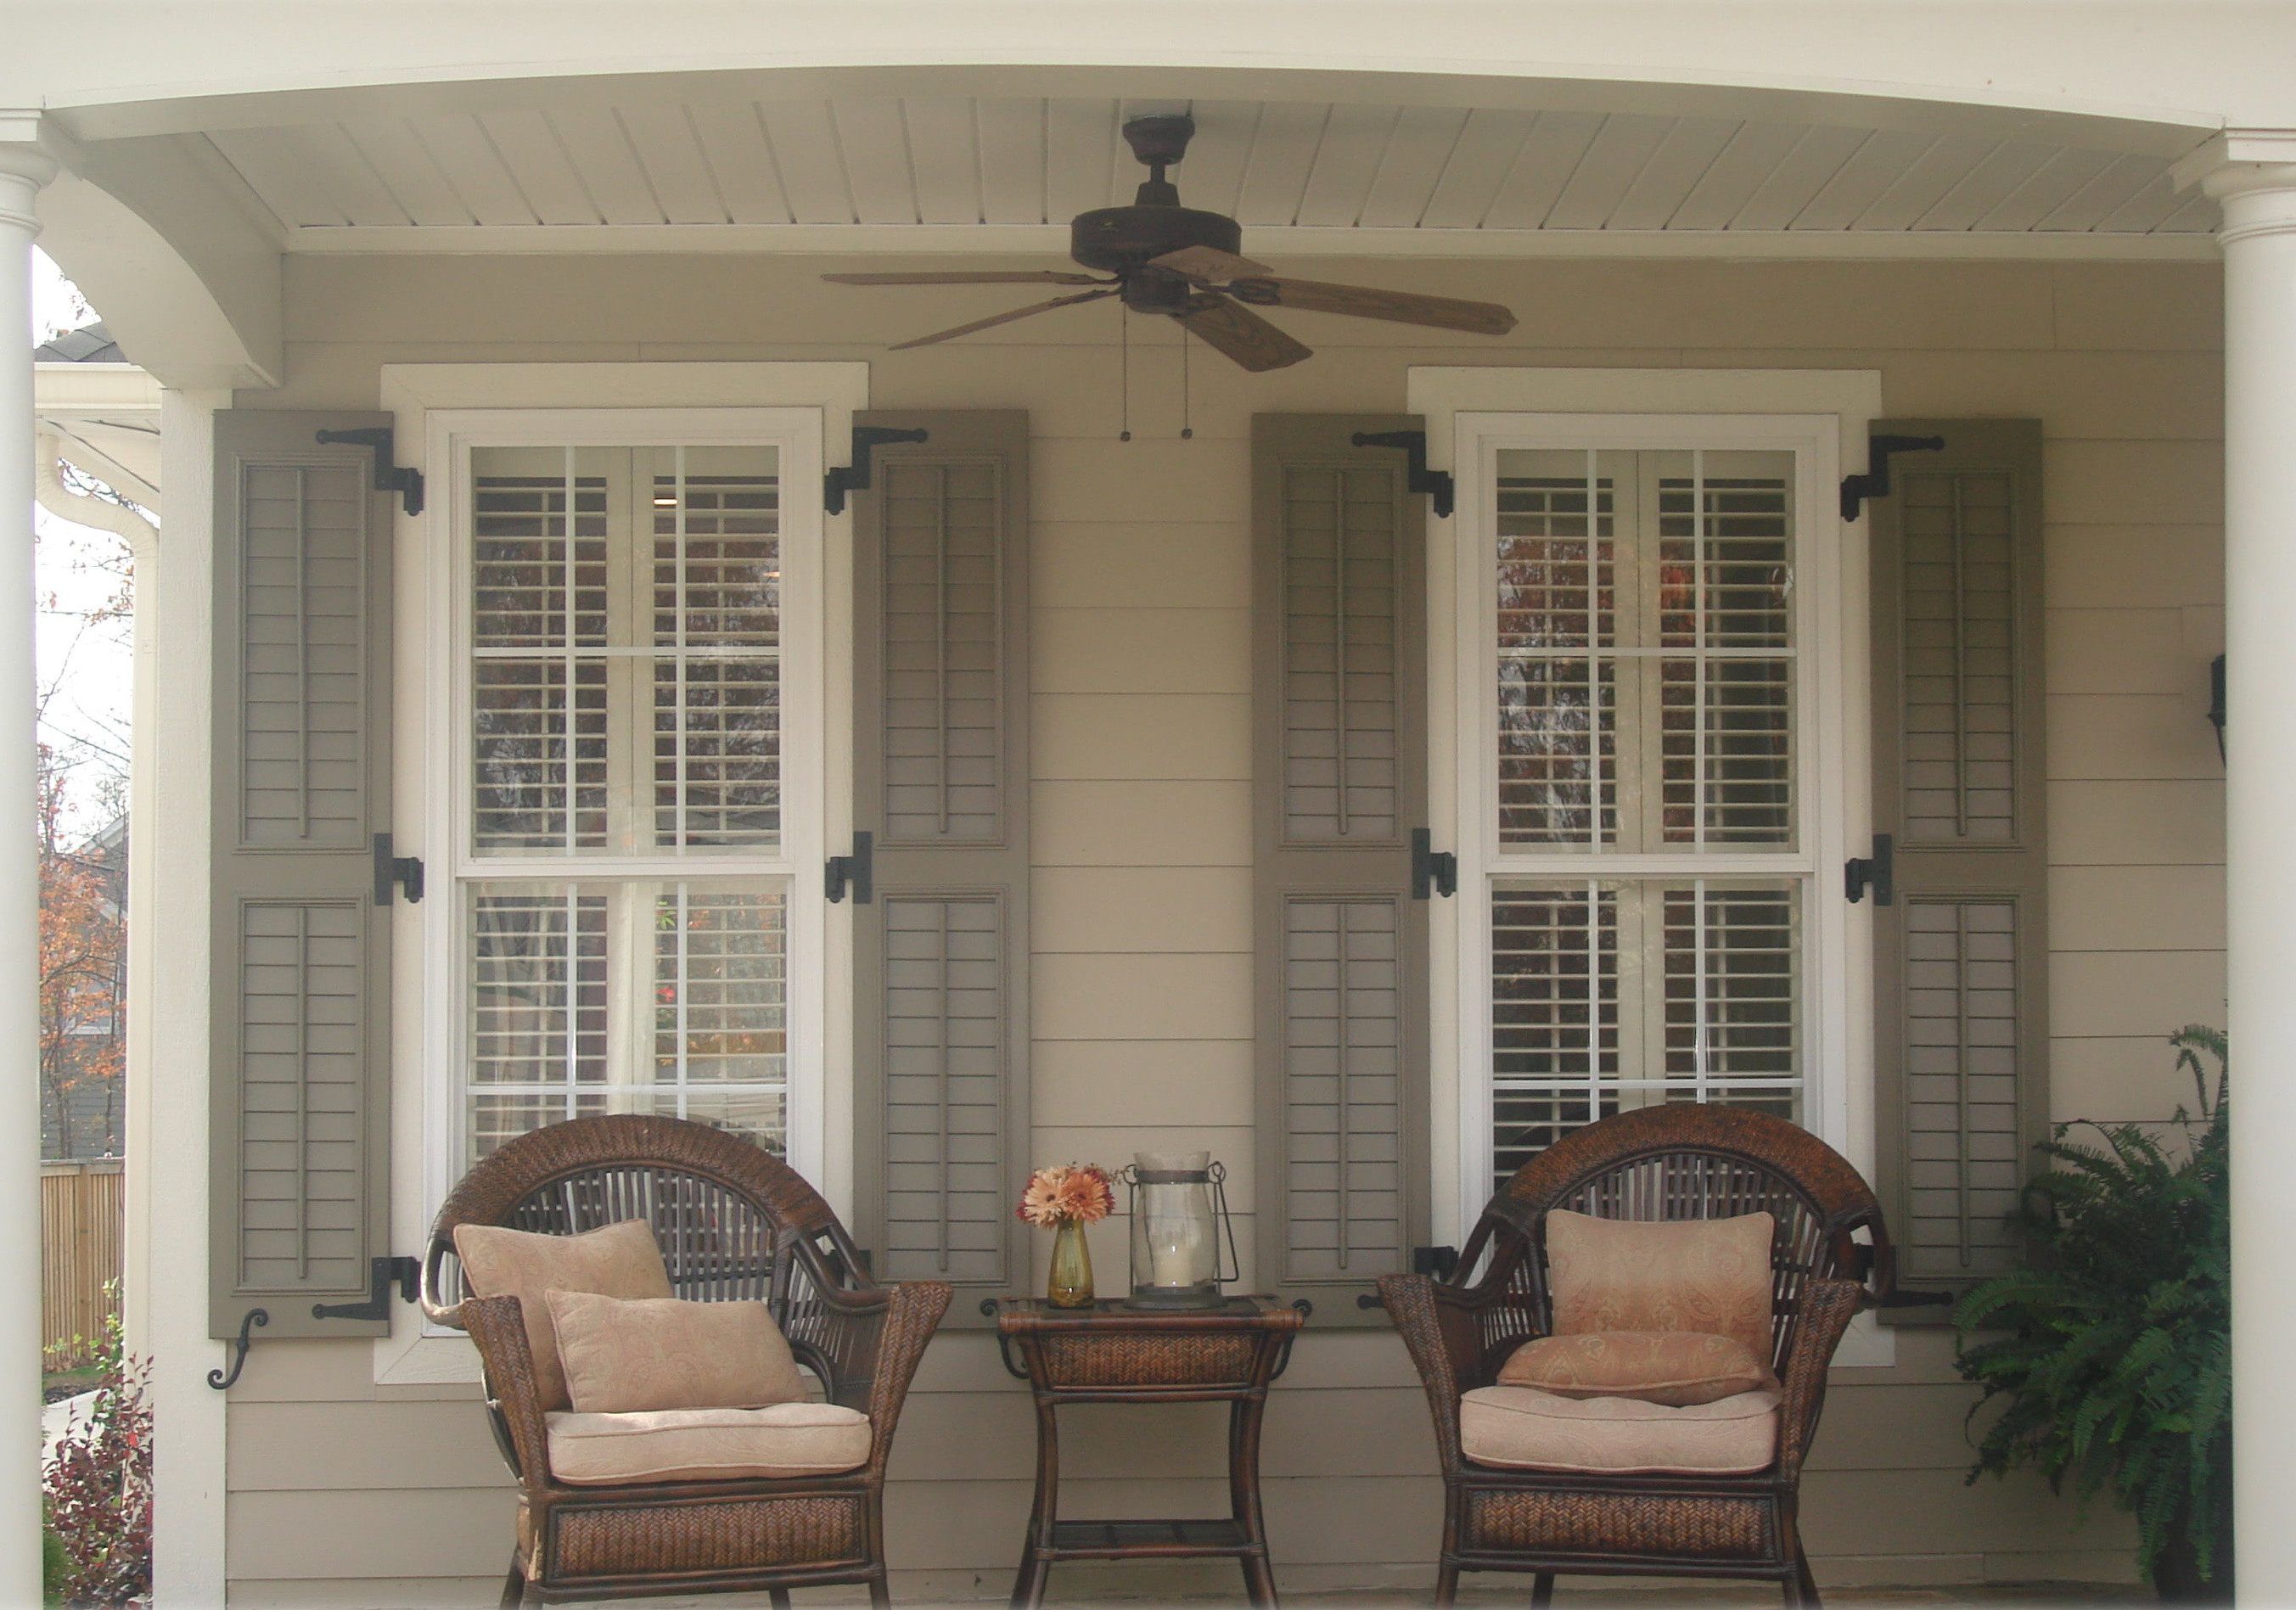 Stylish window shutters for window treatment ideas - Where to buy exterior window shutters ...